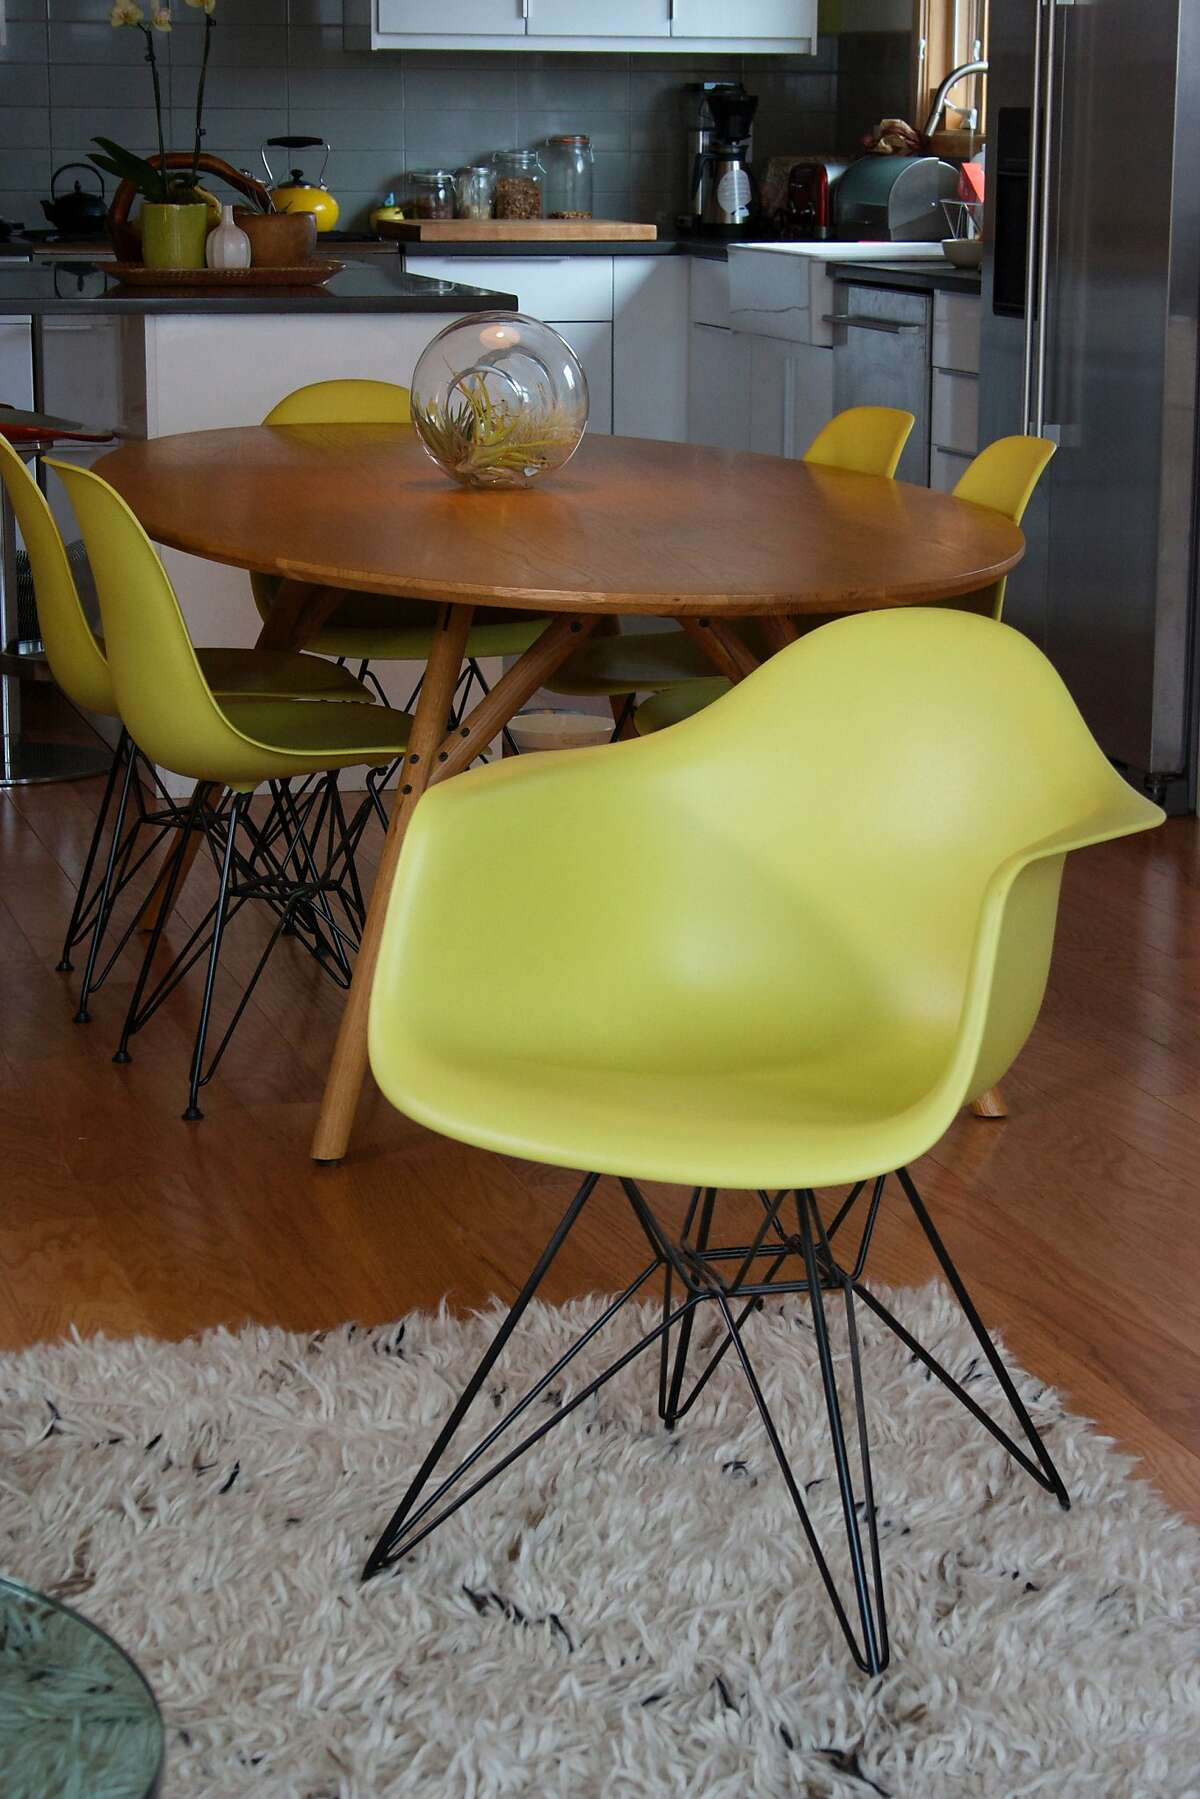 Jill McCoy fave: Midcentury pieces.